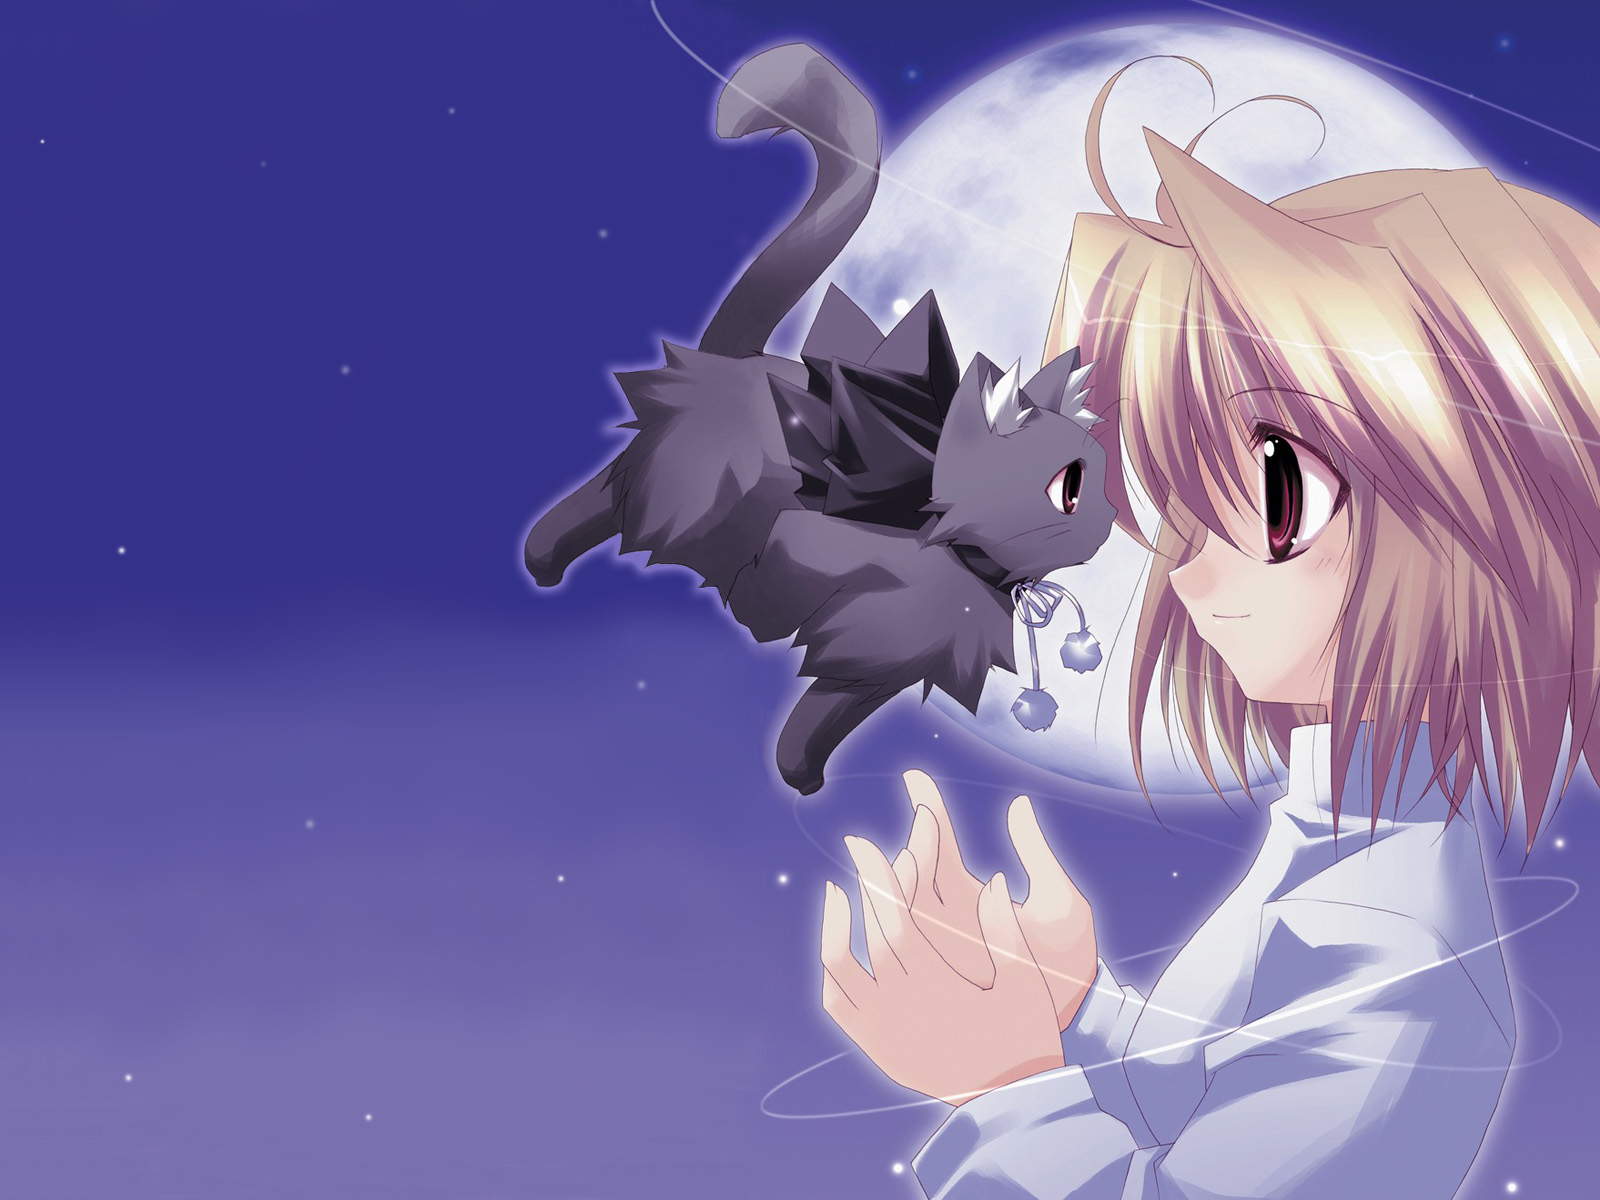 cute anime backgrounds wallpaper - photo #27